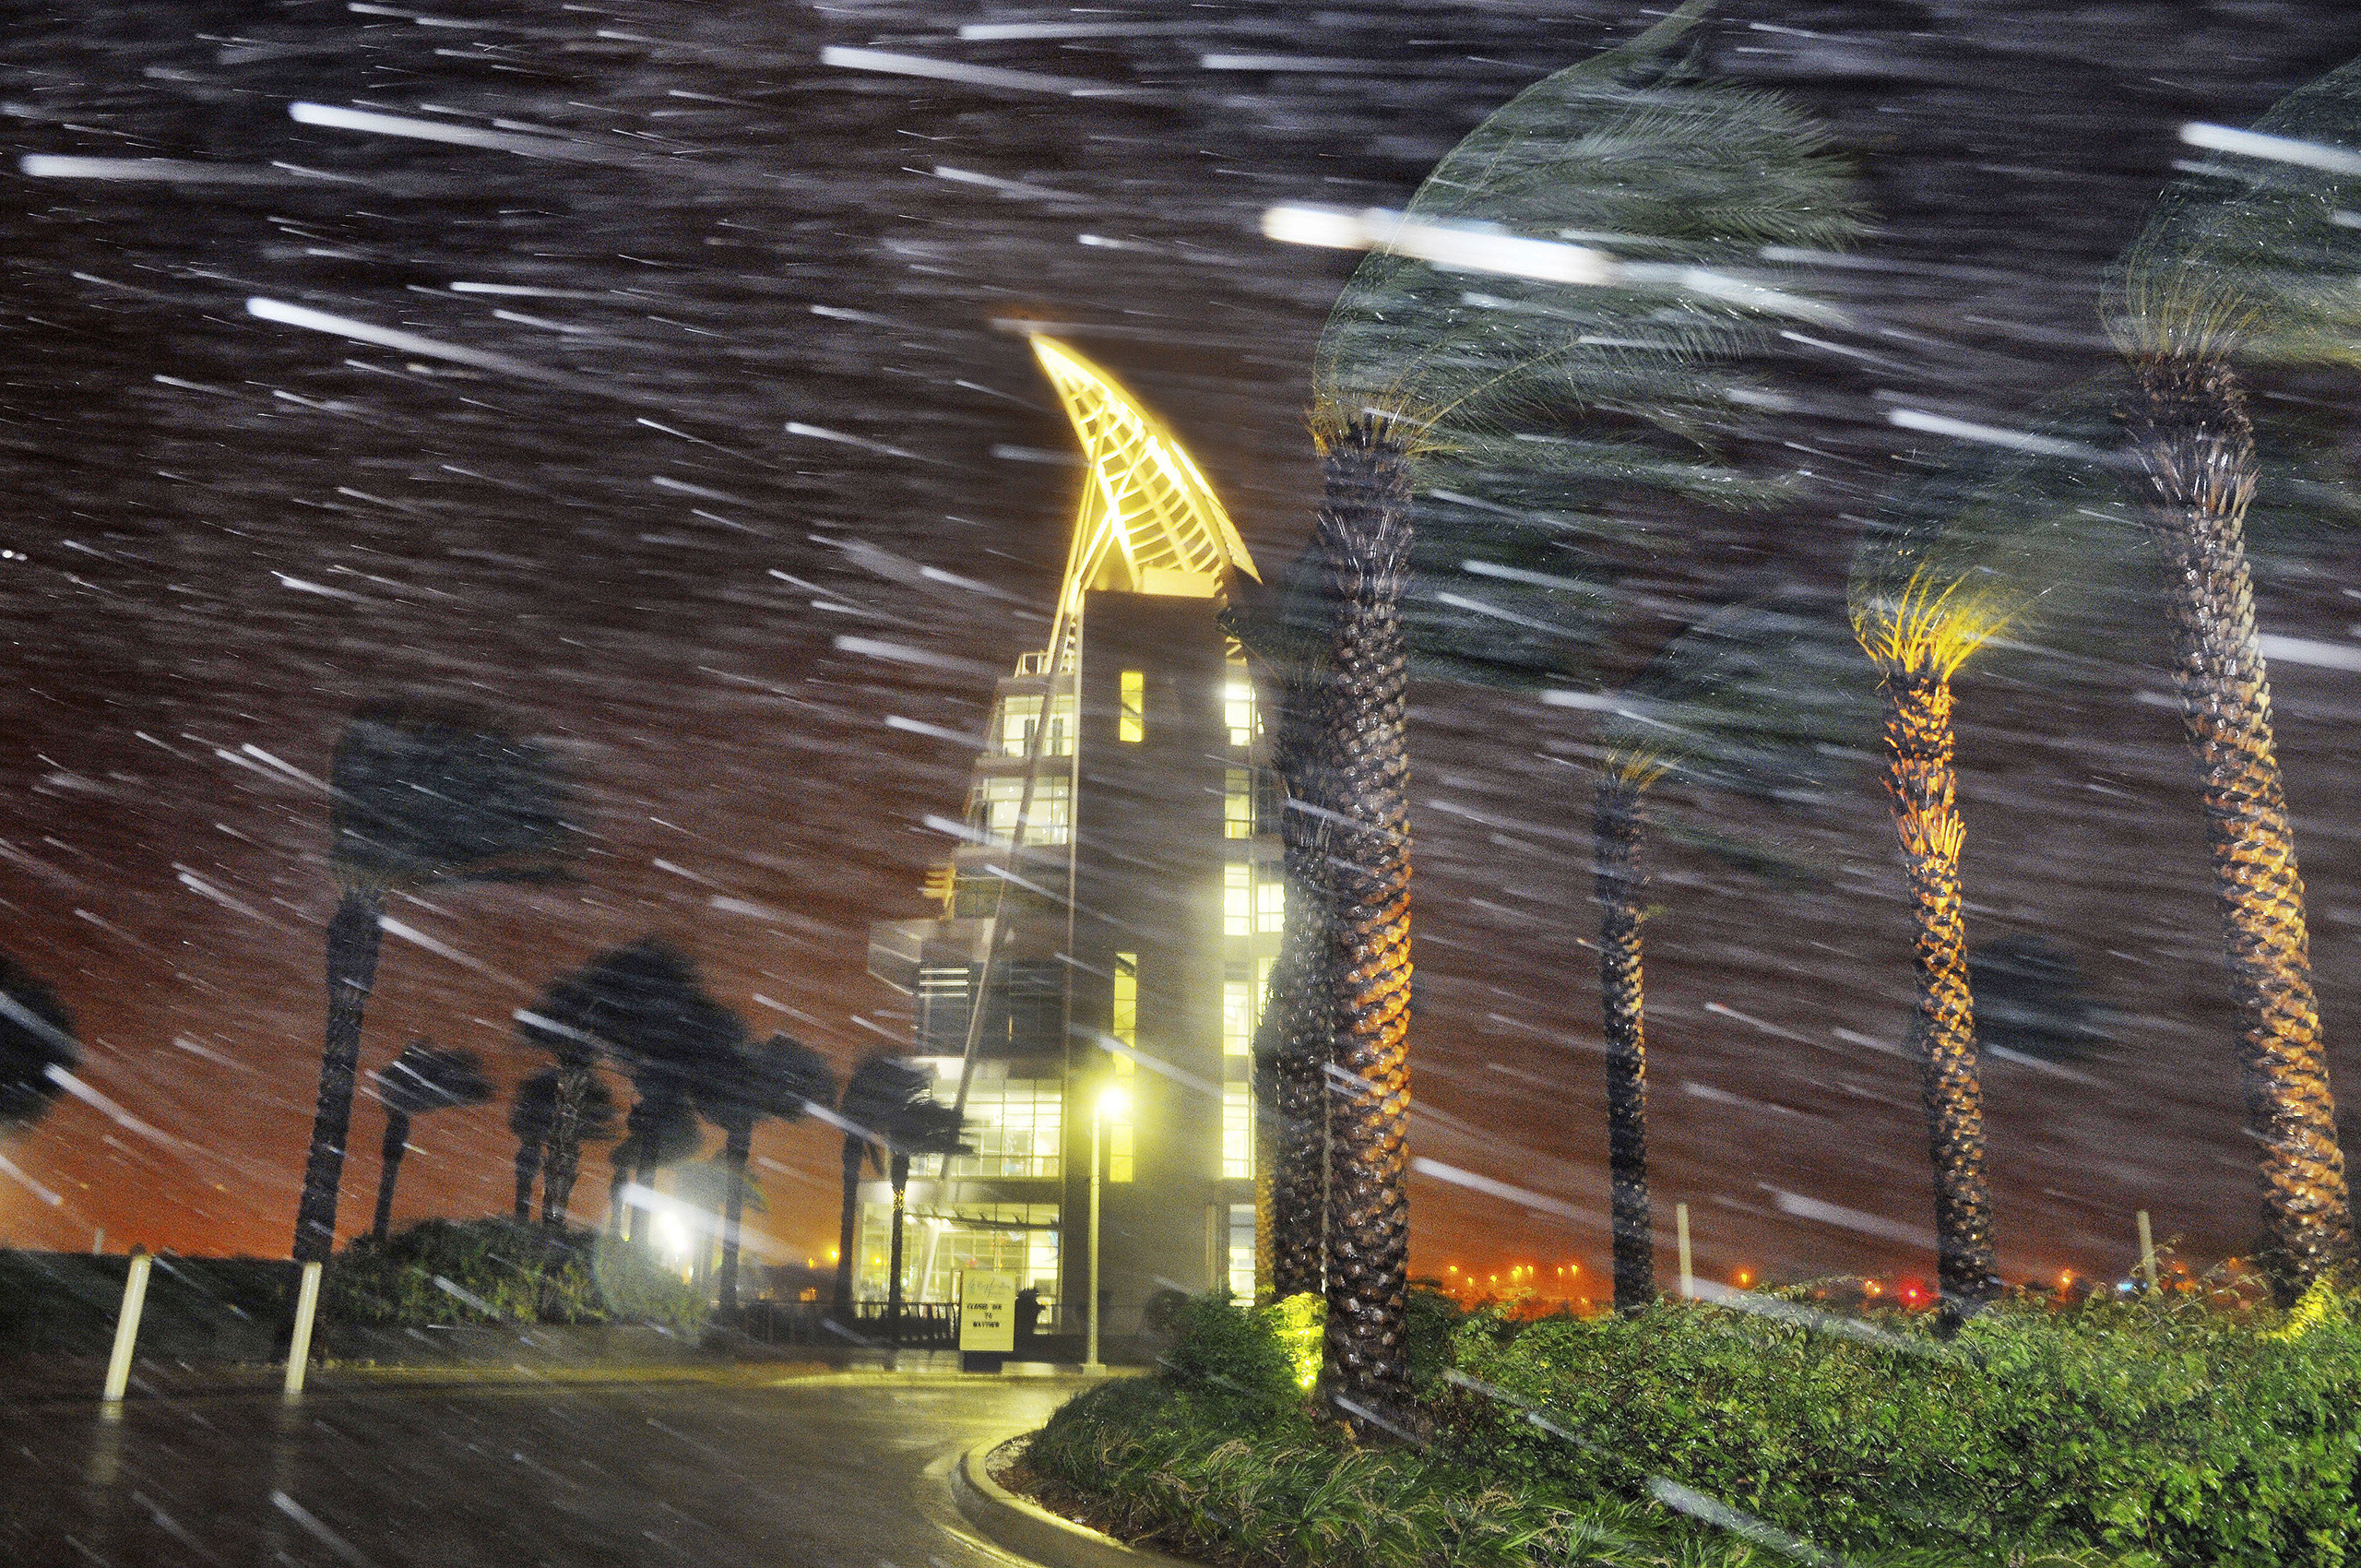 Trees sway from heavy rain and wind from Hurricane Matthew in front of Exploration Tower in Cape Canaveral, Fla., Oct. 7, 2016.